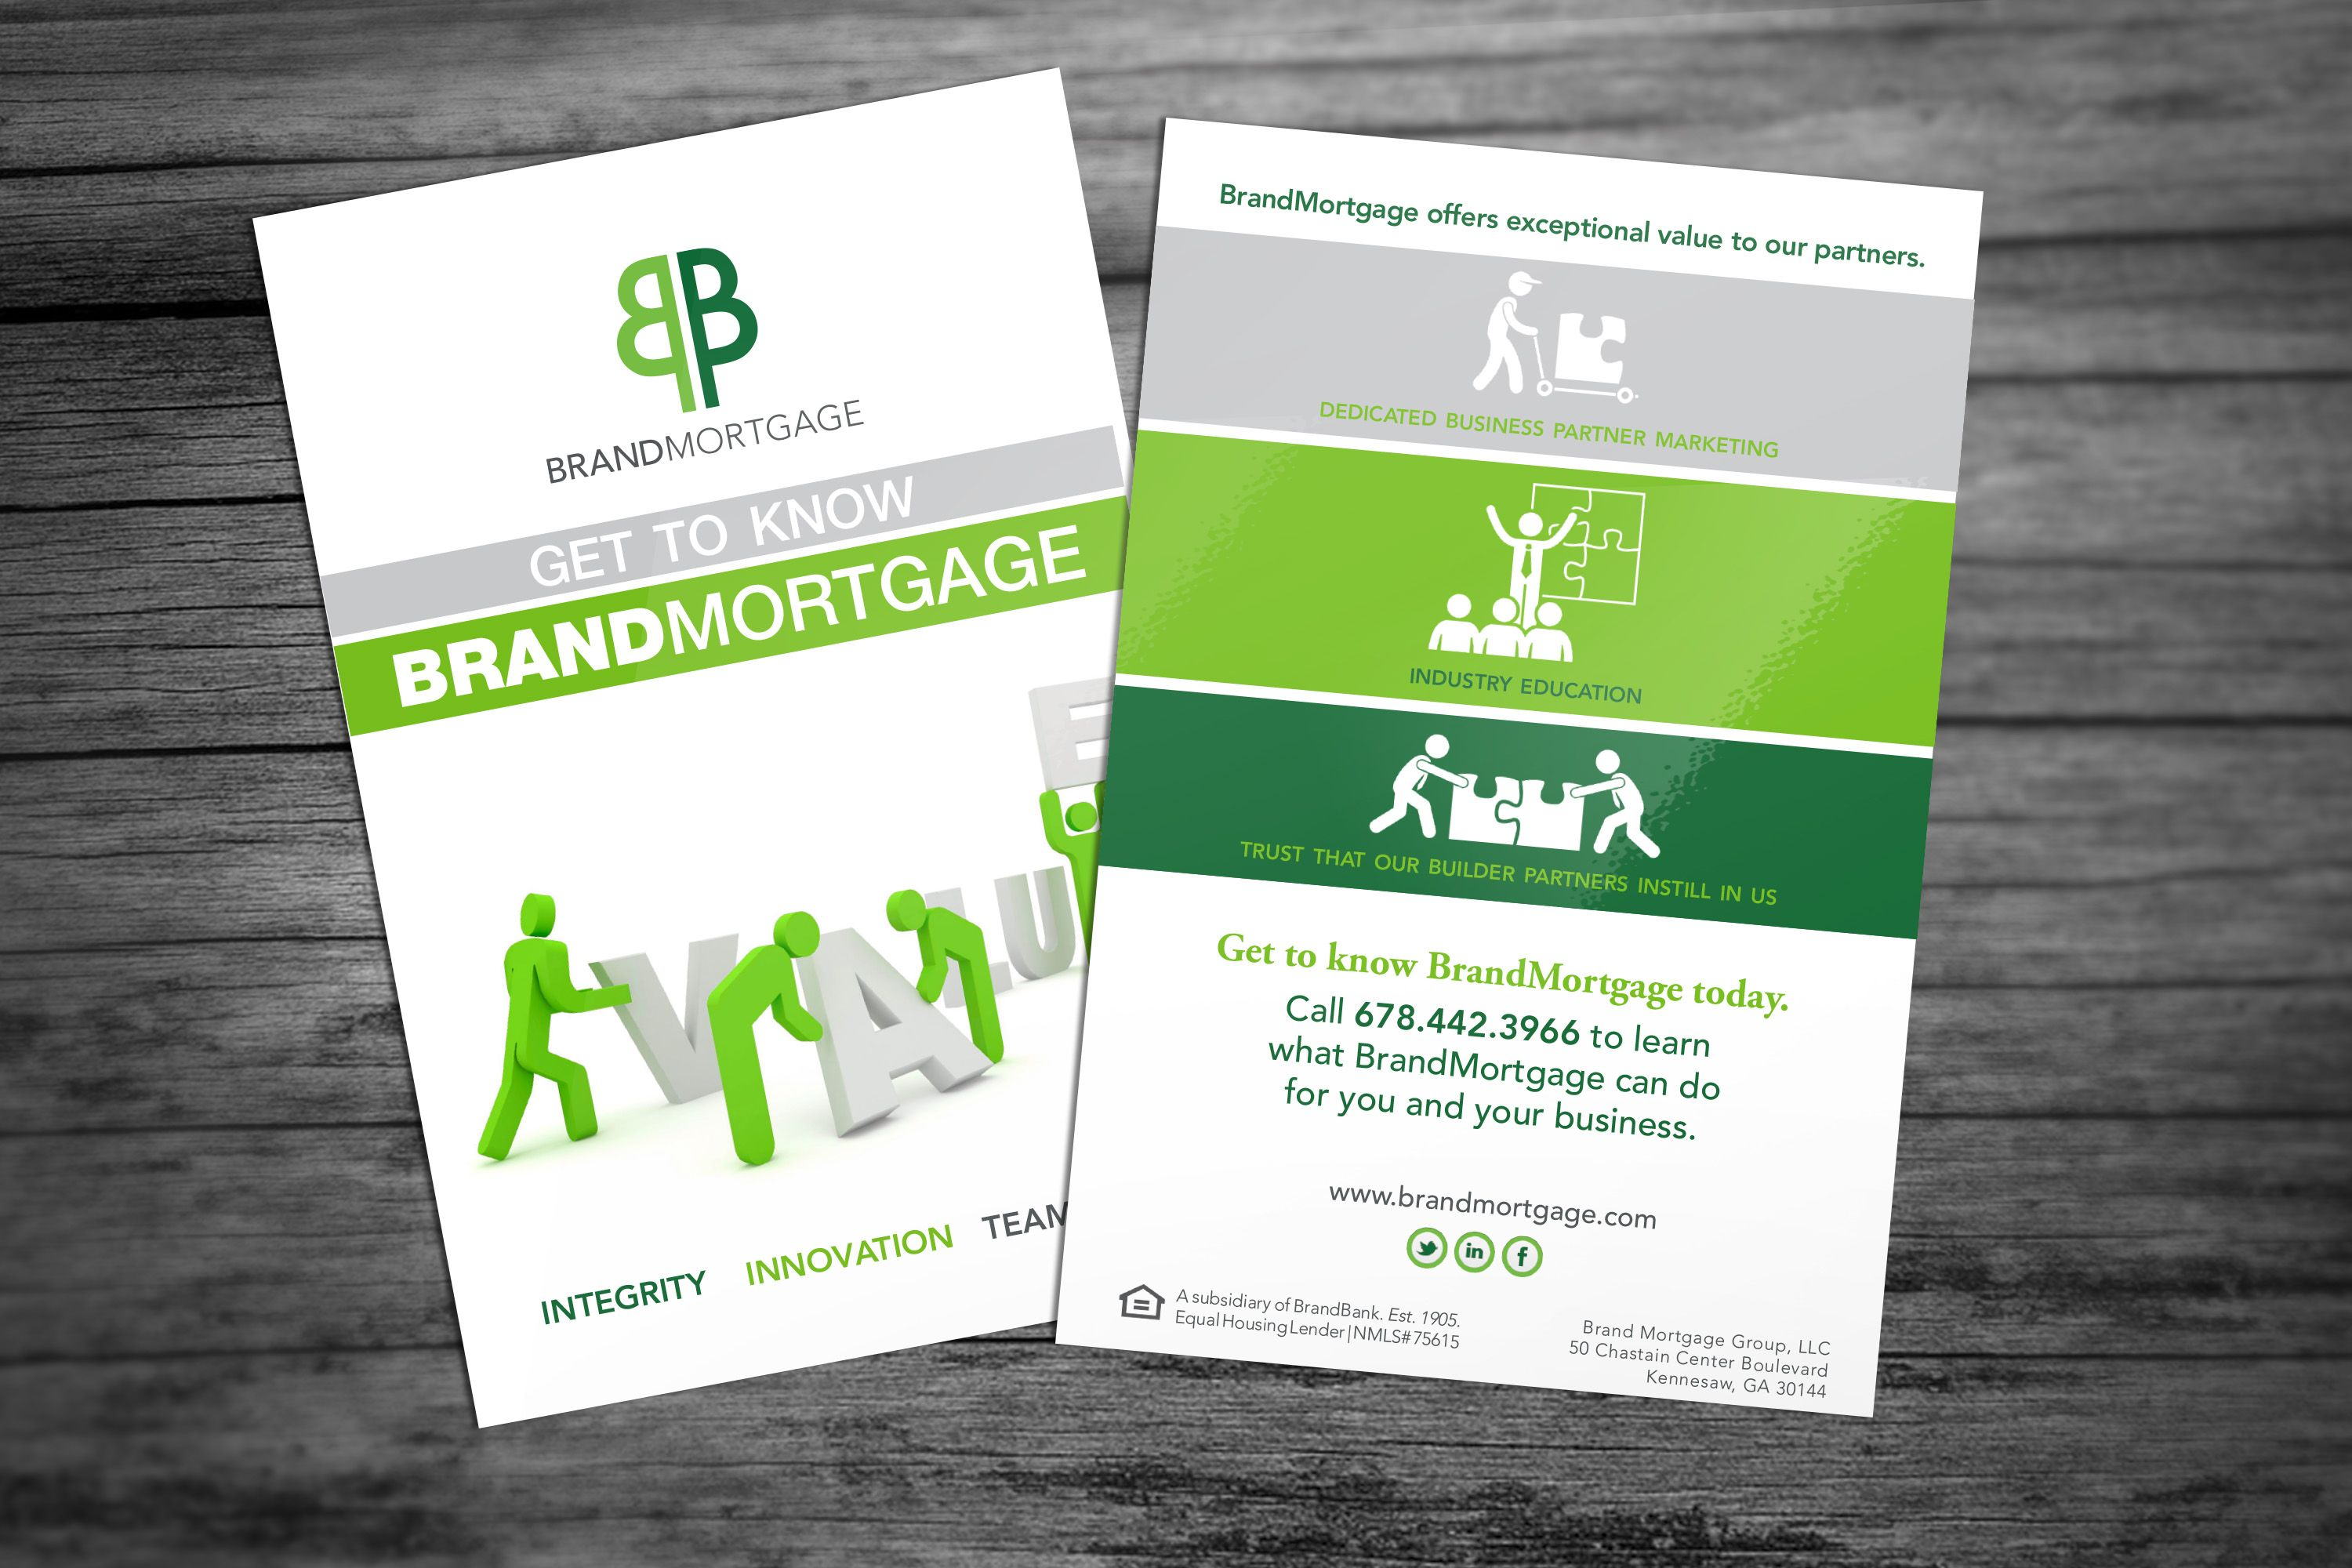 Brandmortgage drip campaign postcard design graphic design sample brandmortgage drip campaign postcard design graphic design sample marketing campaign postcard altavistaventures Choice Image